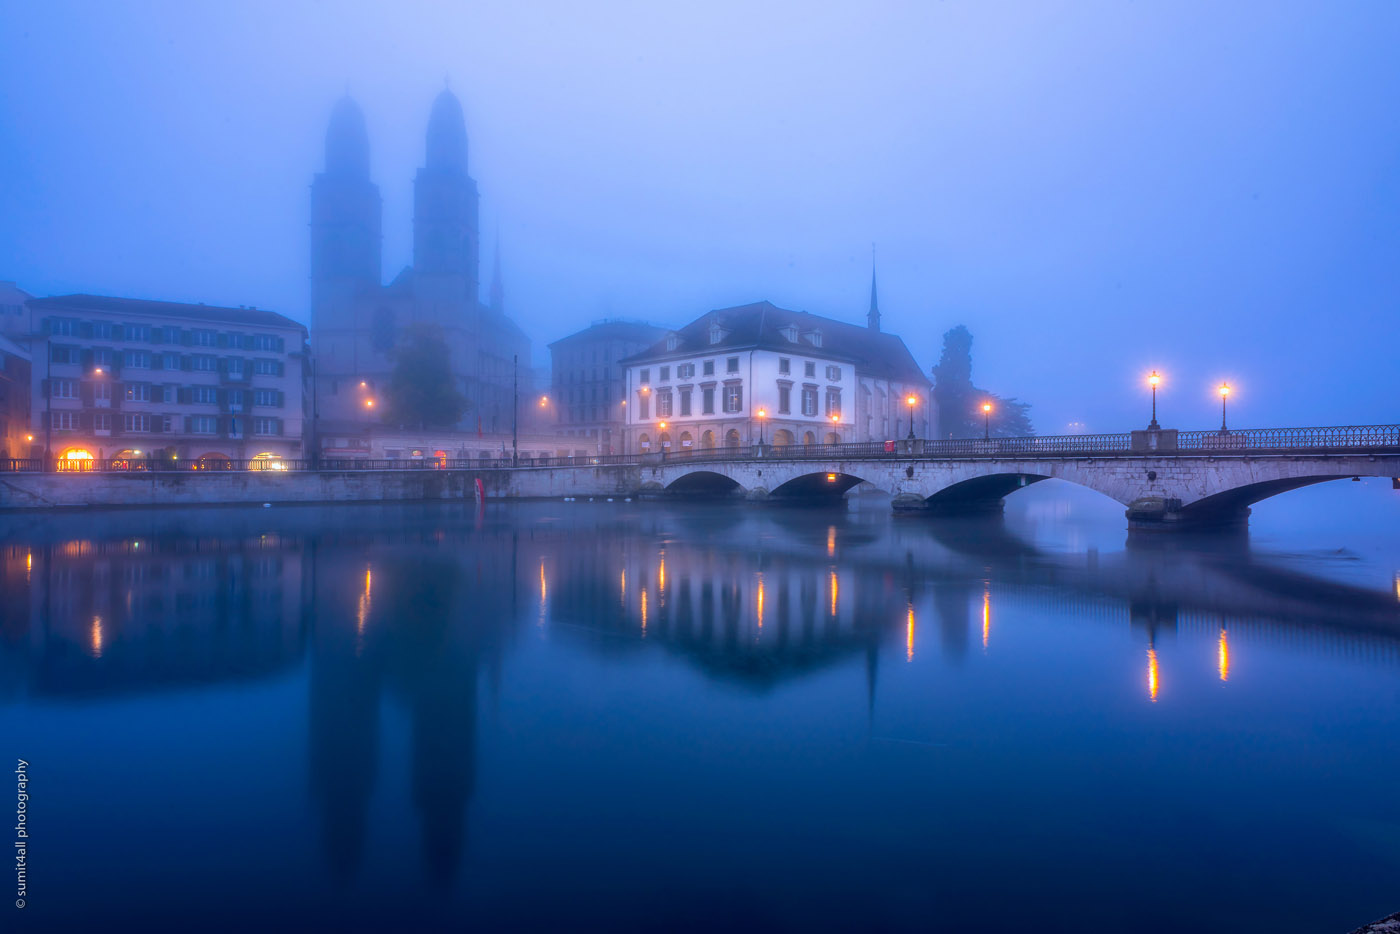 Foggy Morning, Zurich, Switzerland